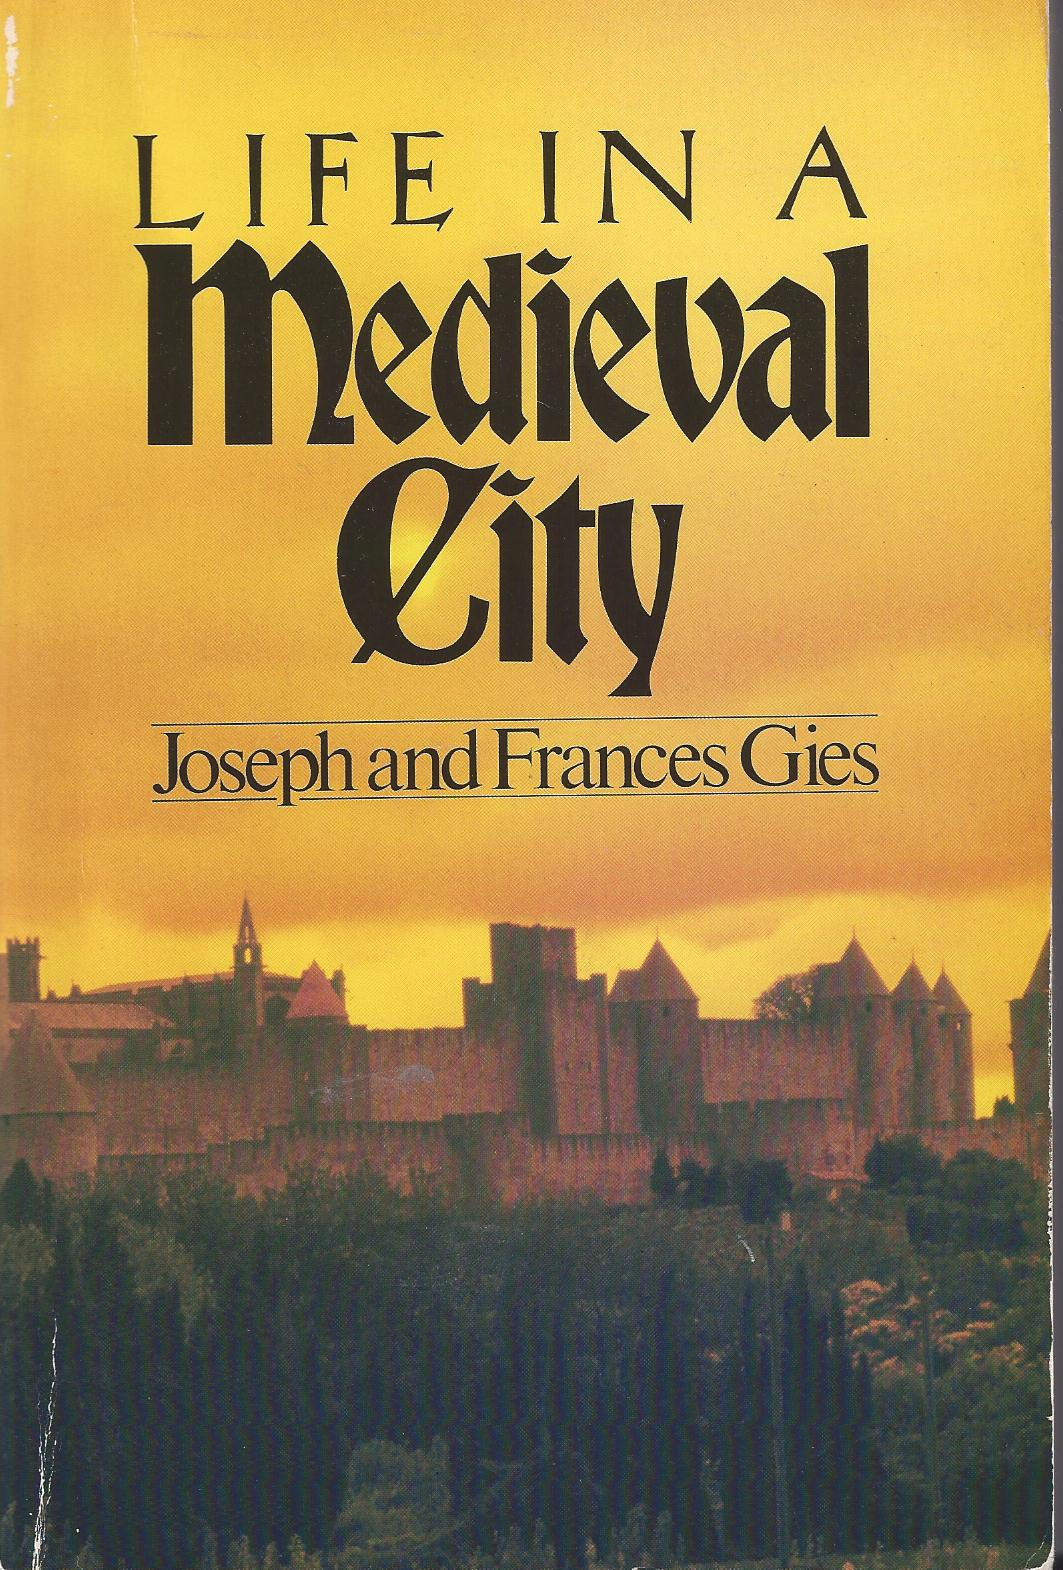 Life in the Medieval city